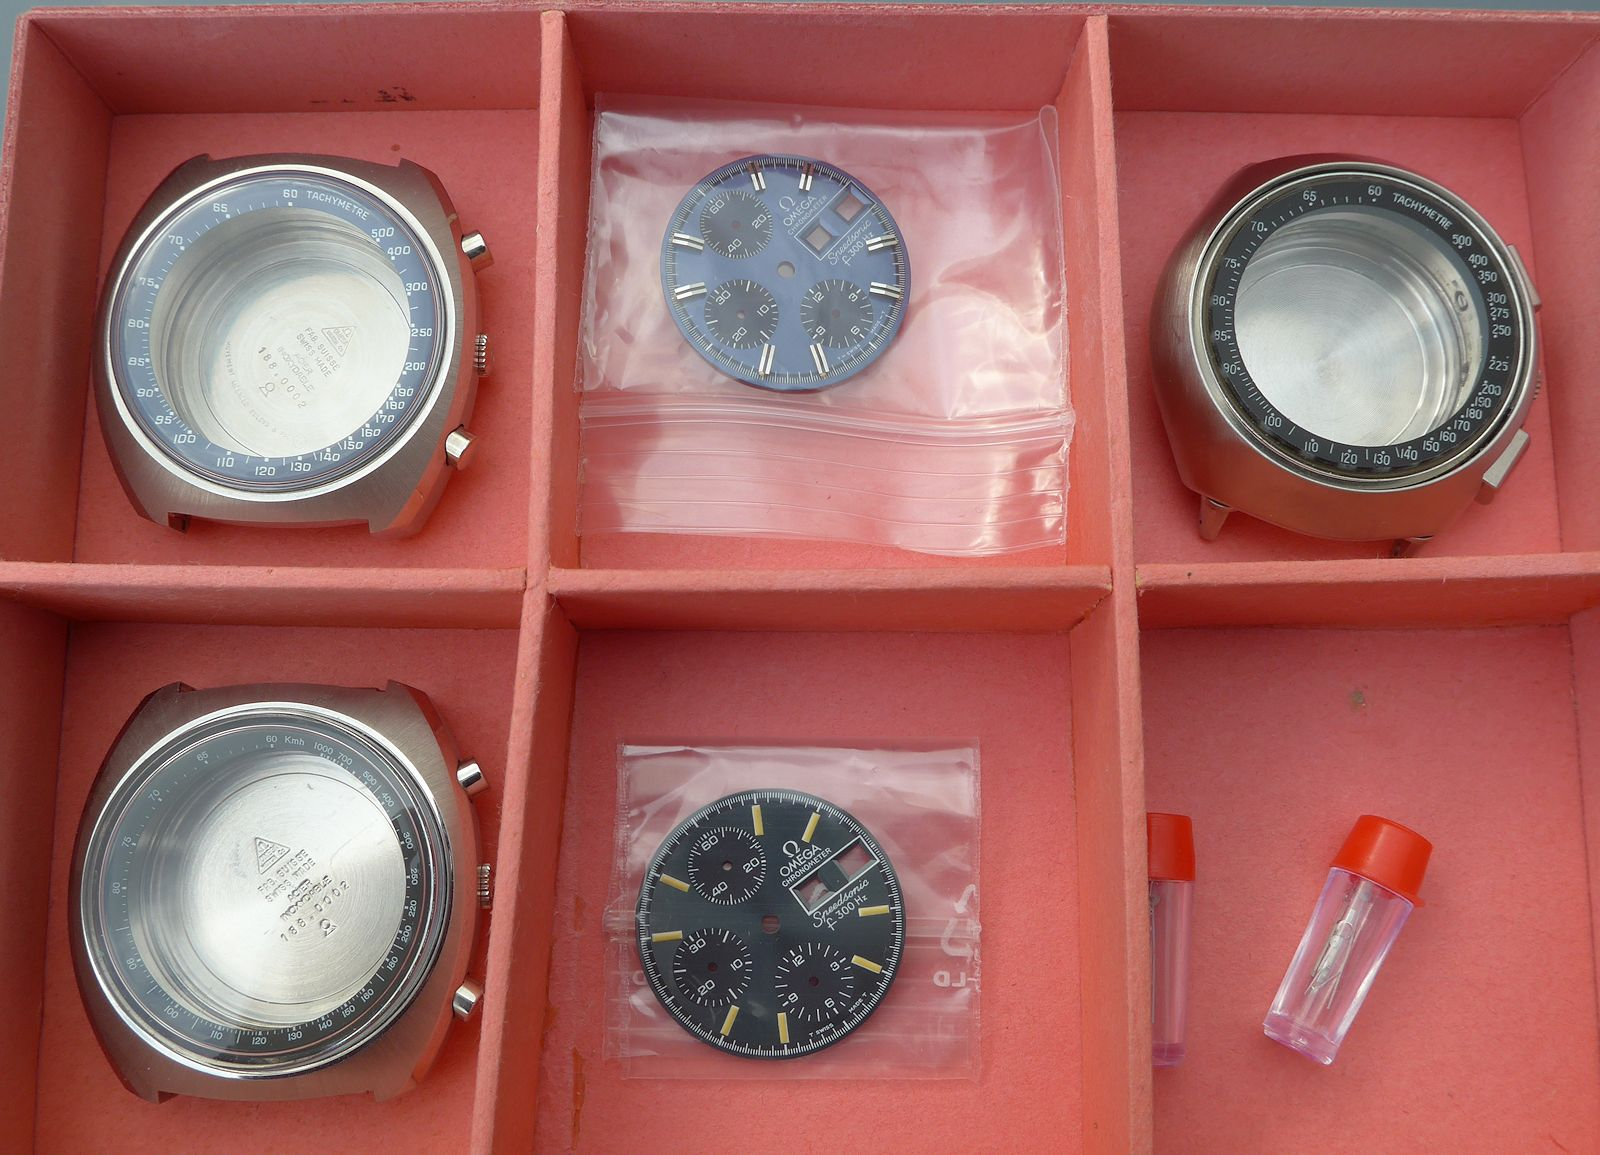 Omega f300 Speedsonic NOS Steel 188.0001 and 188.0002 Cases and Dials